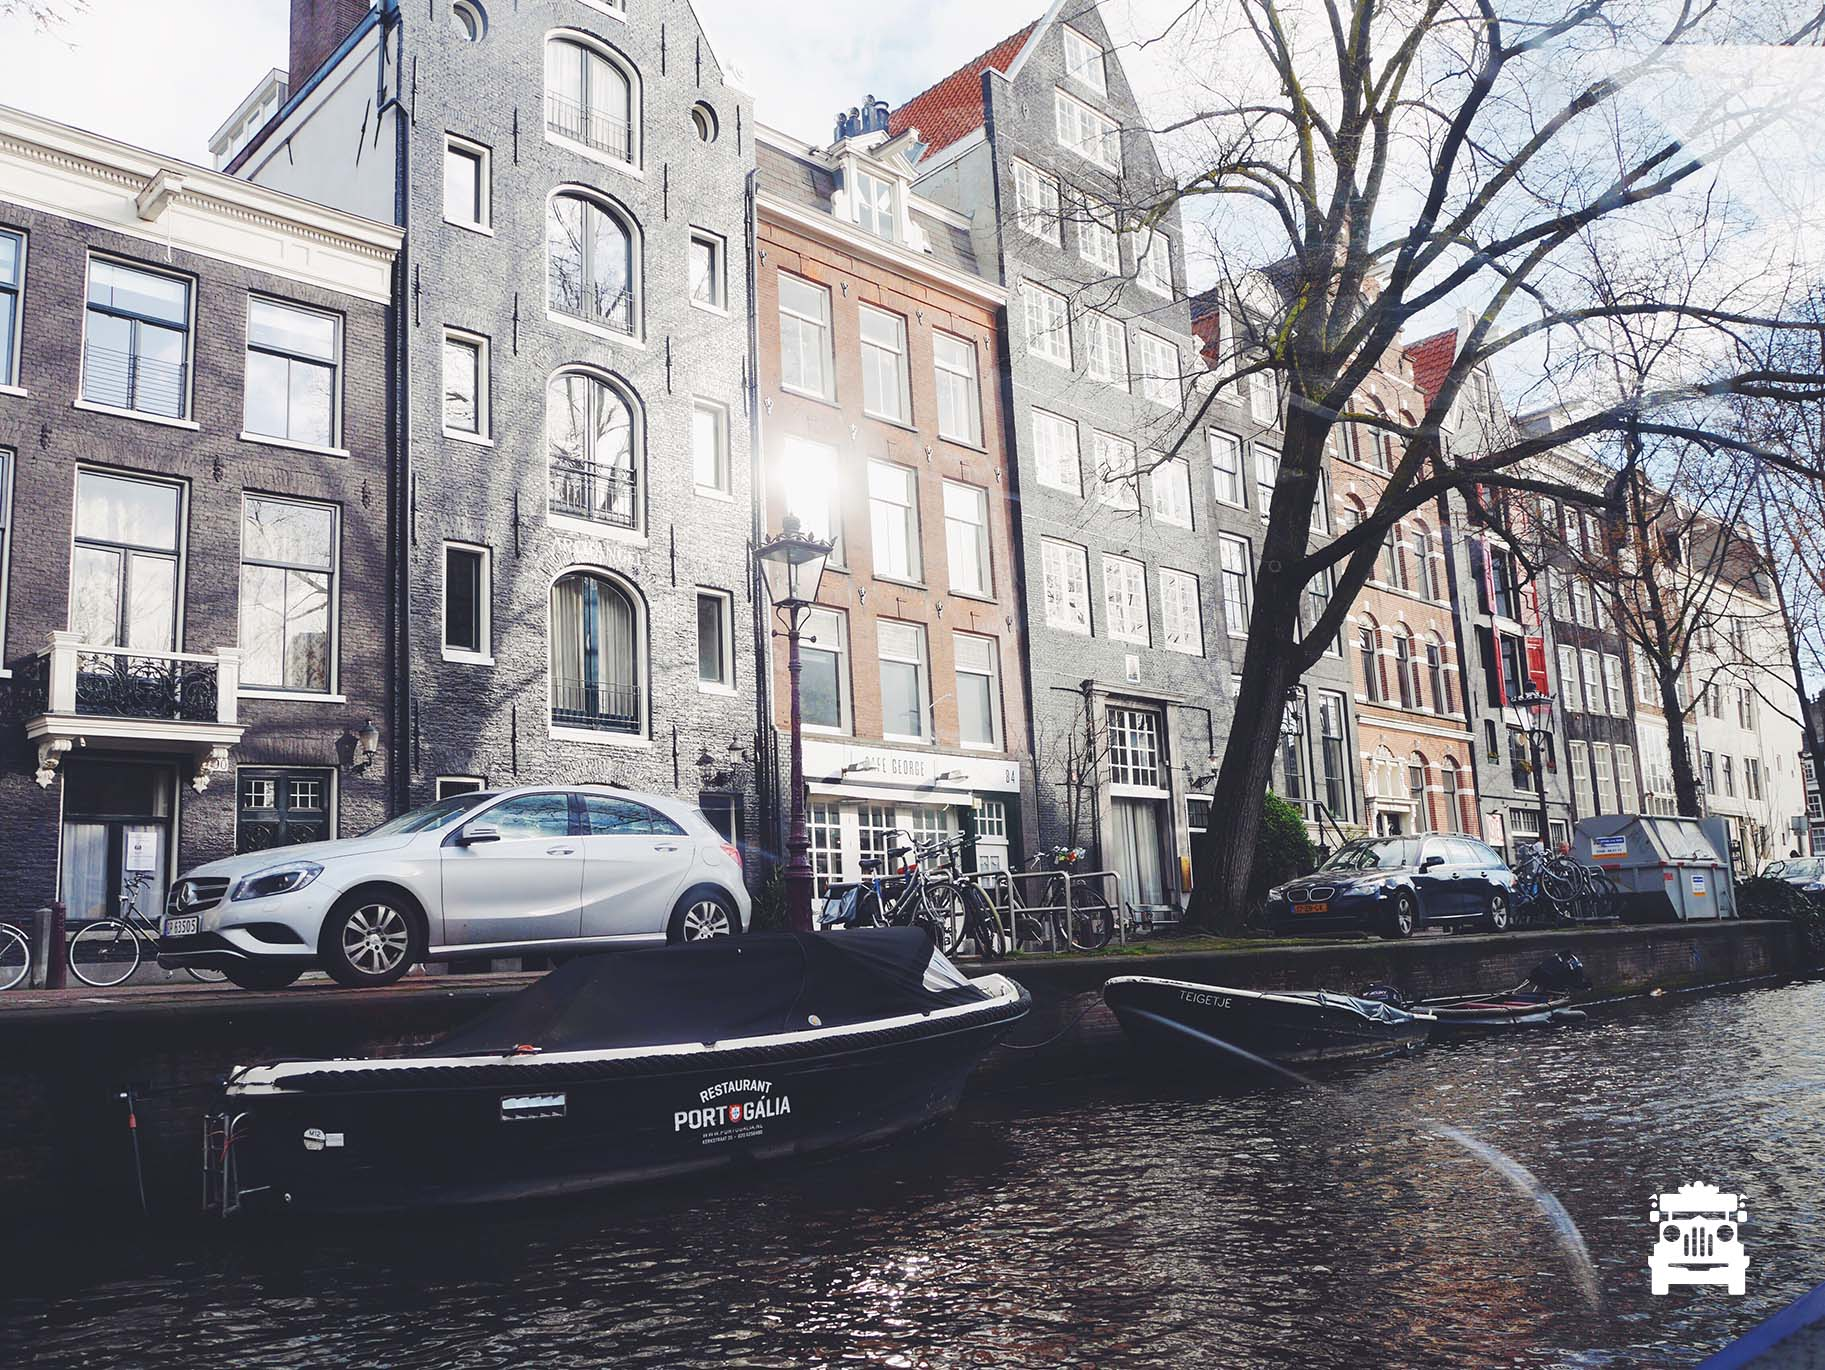 The leaning buildings of Amsterdam